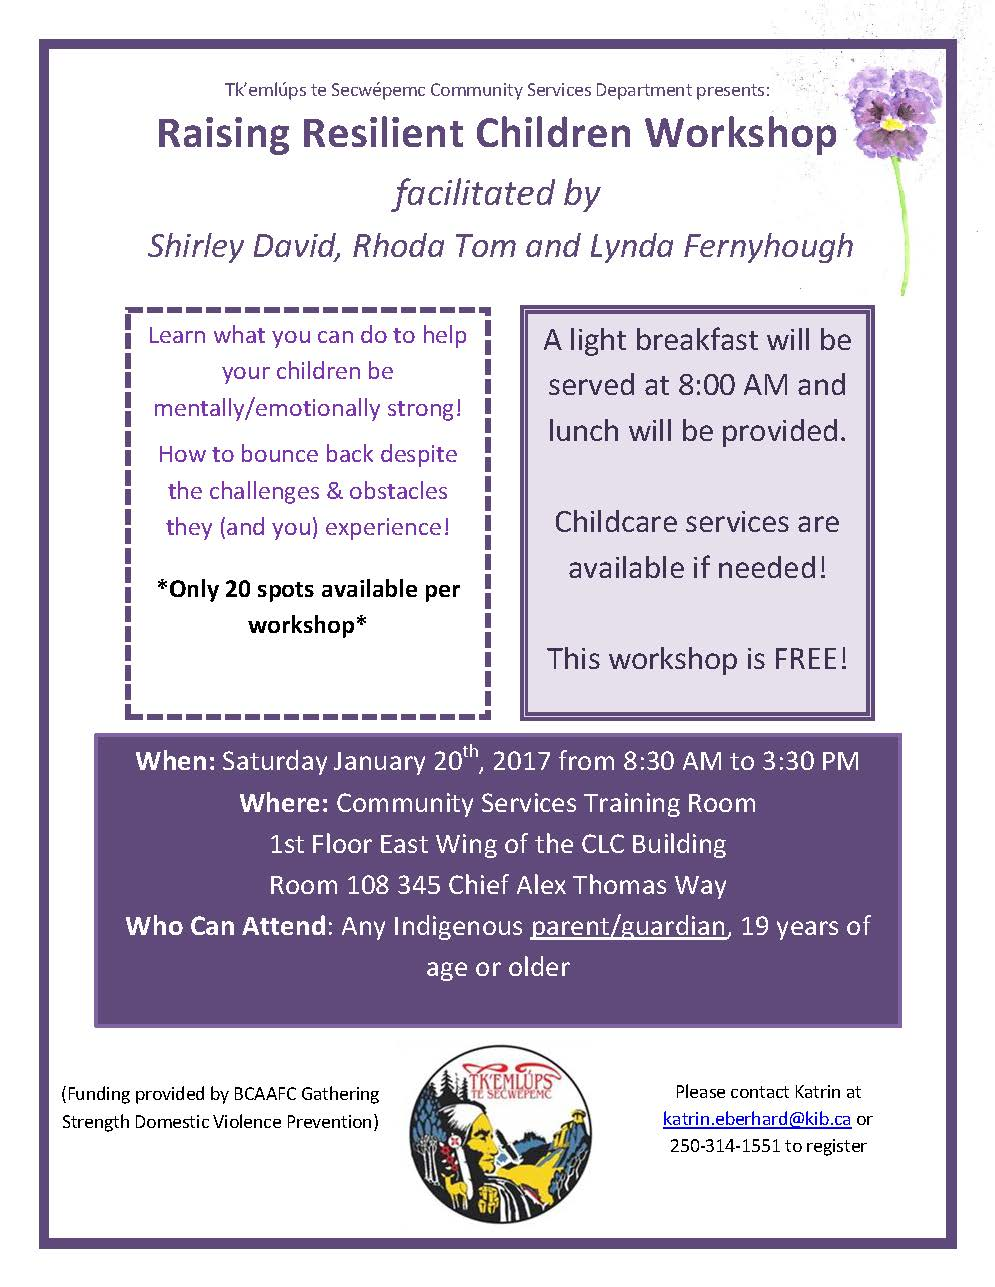 Raising Resilient Children Workshop @ Community Services Training Room